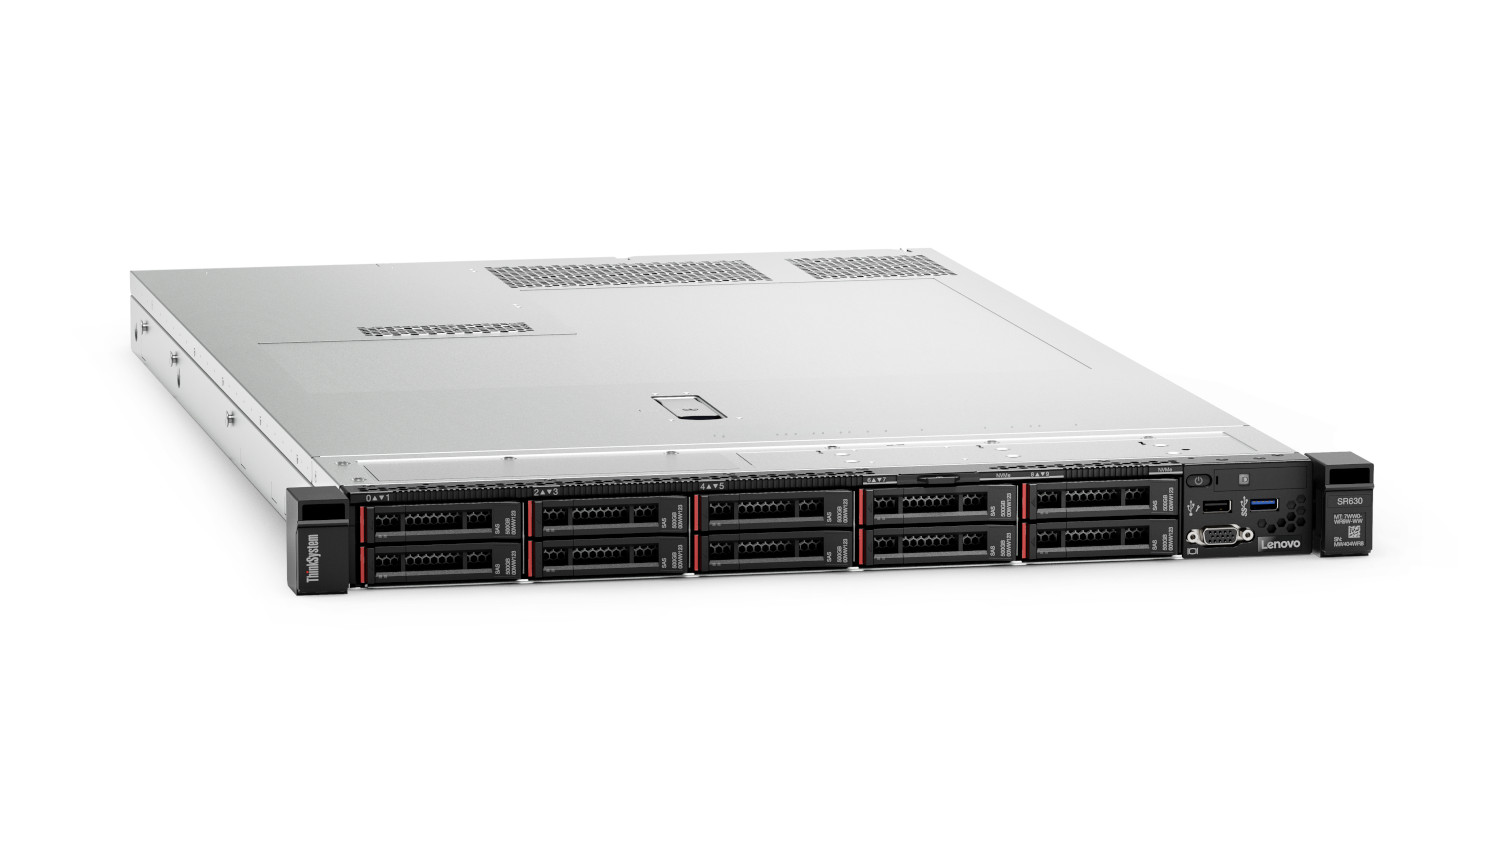 This image shows the Lenovo ThinkSystem SR630 in a front right-facing view